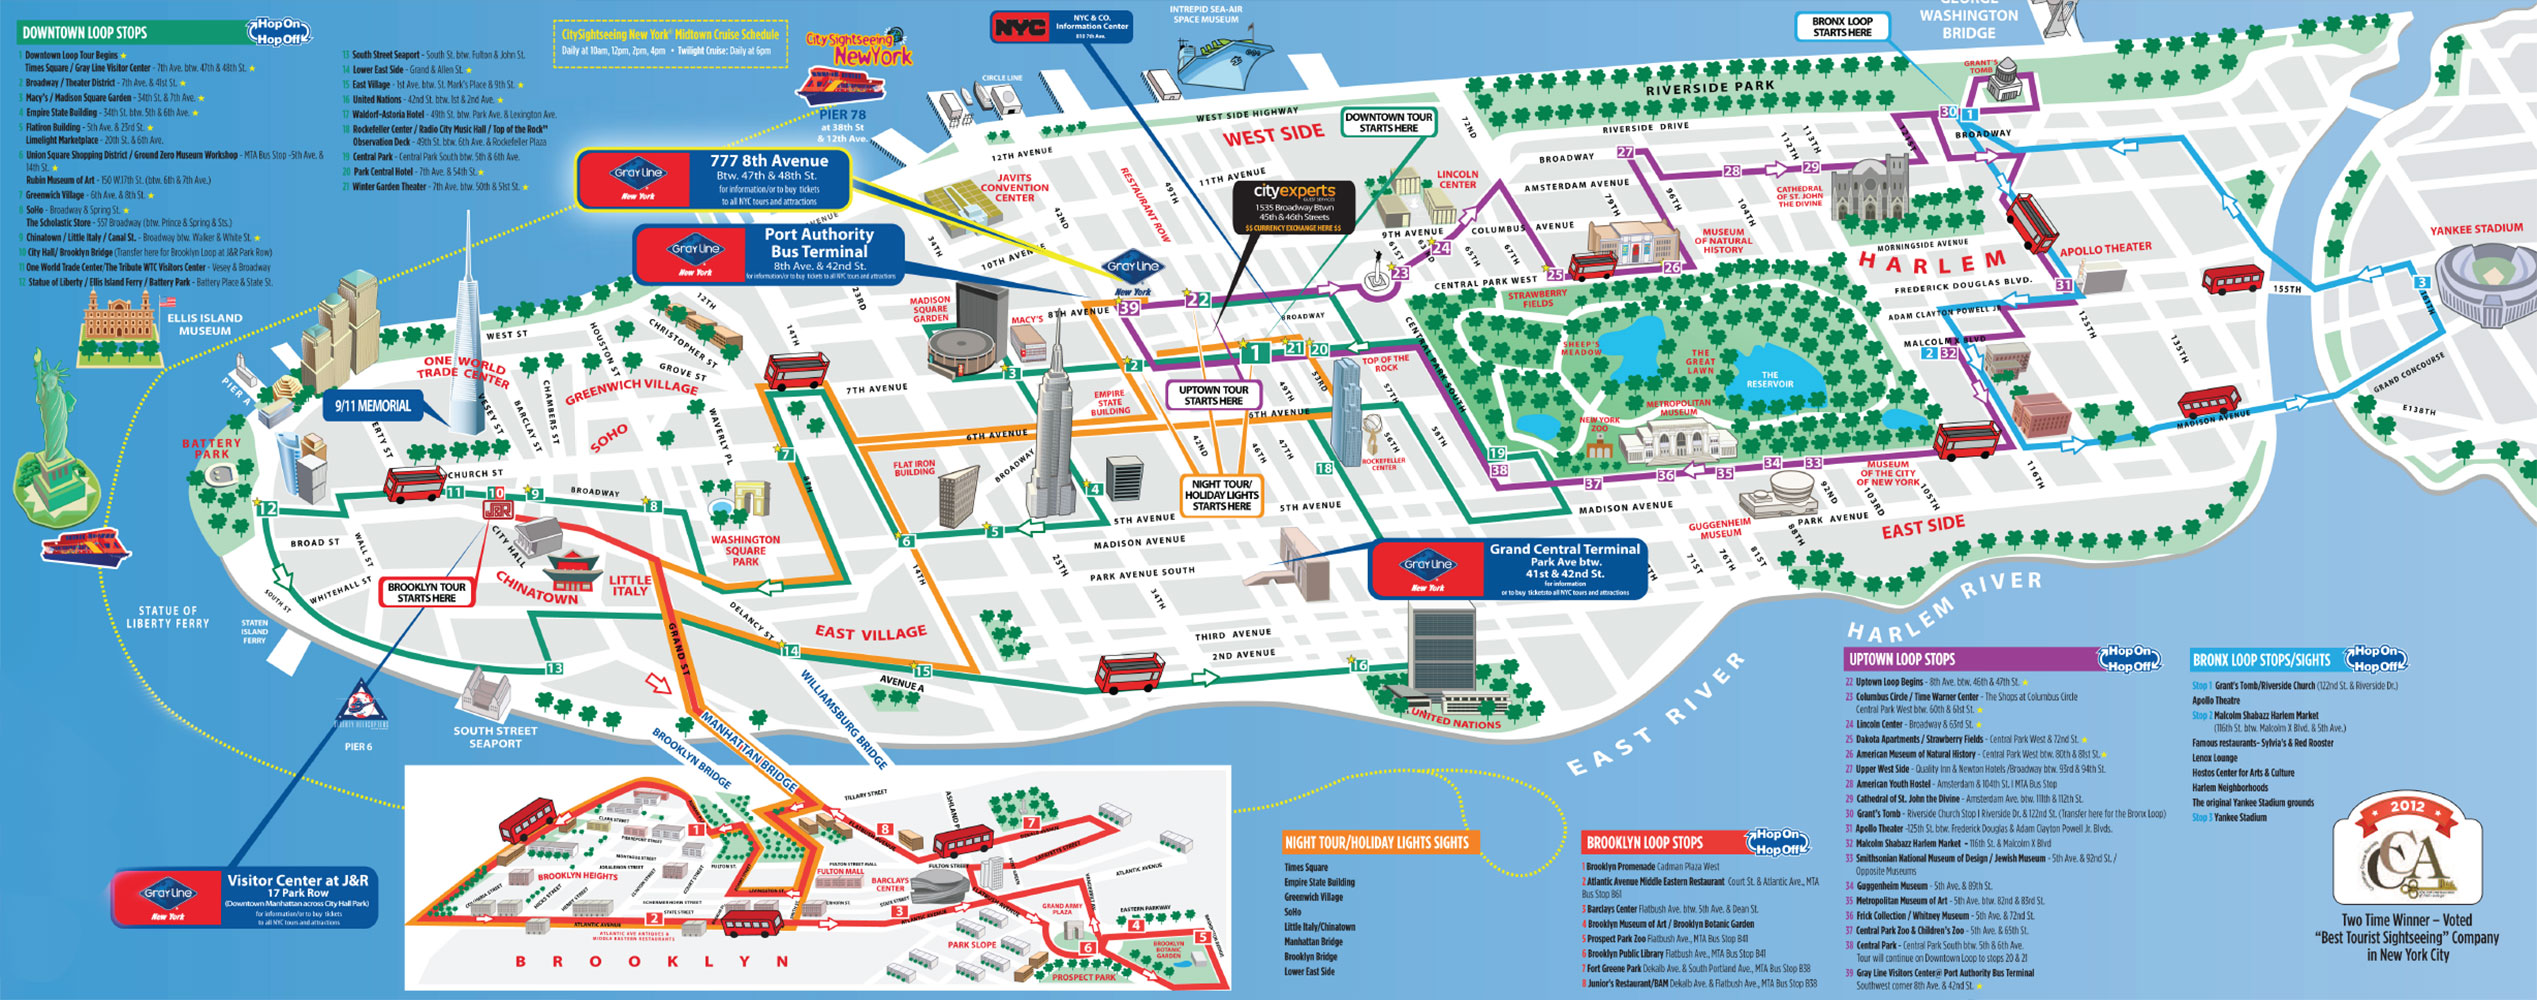 Tourist Attractions In New York Map New York Tourist Attractions – New York Map With Tourist Attractions